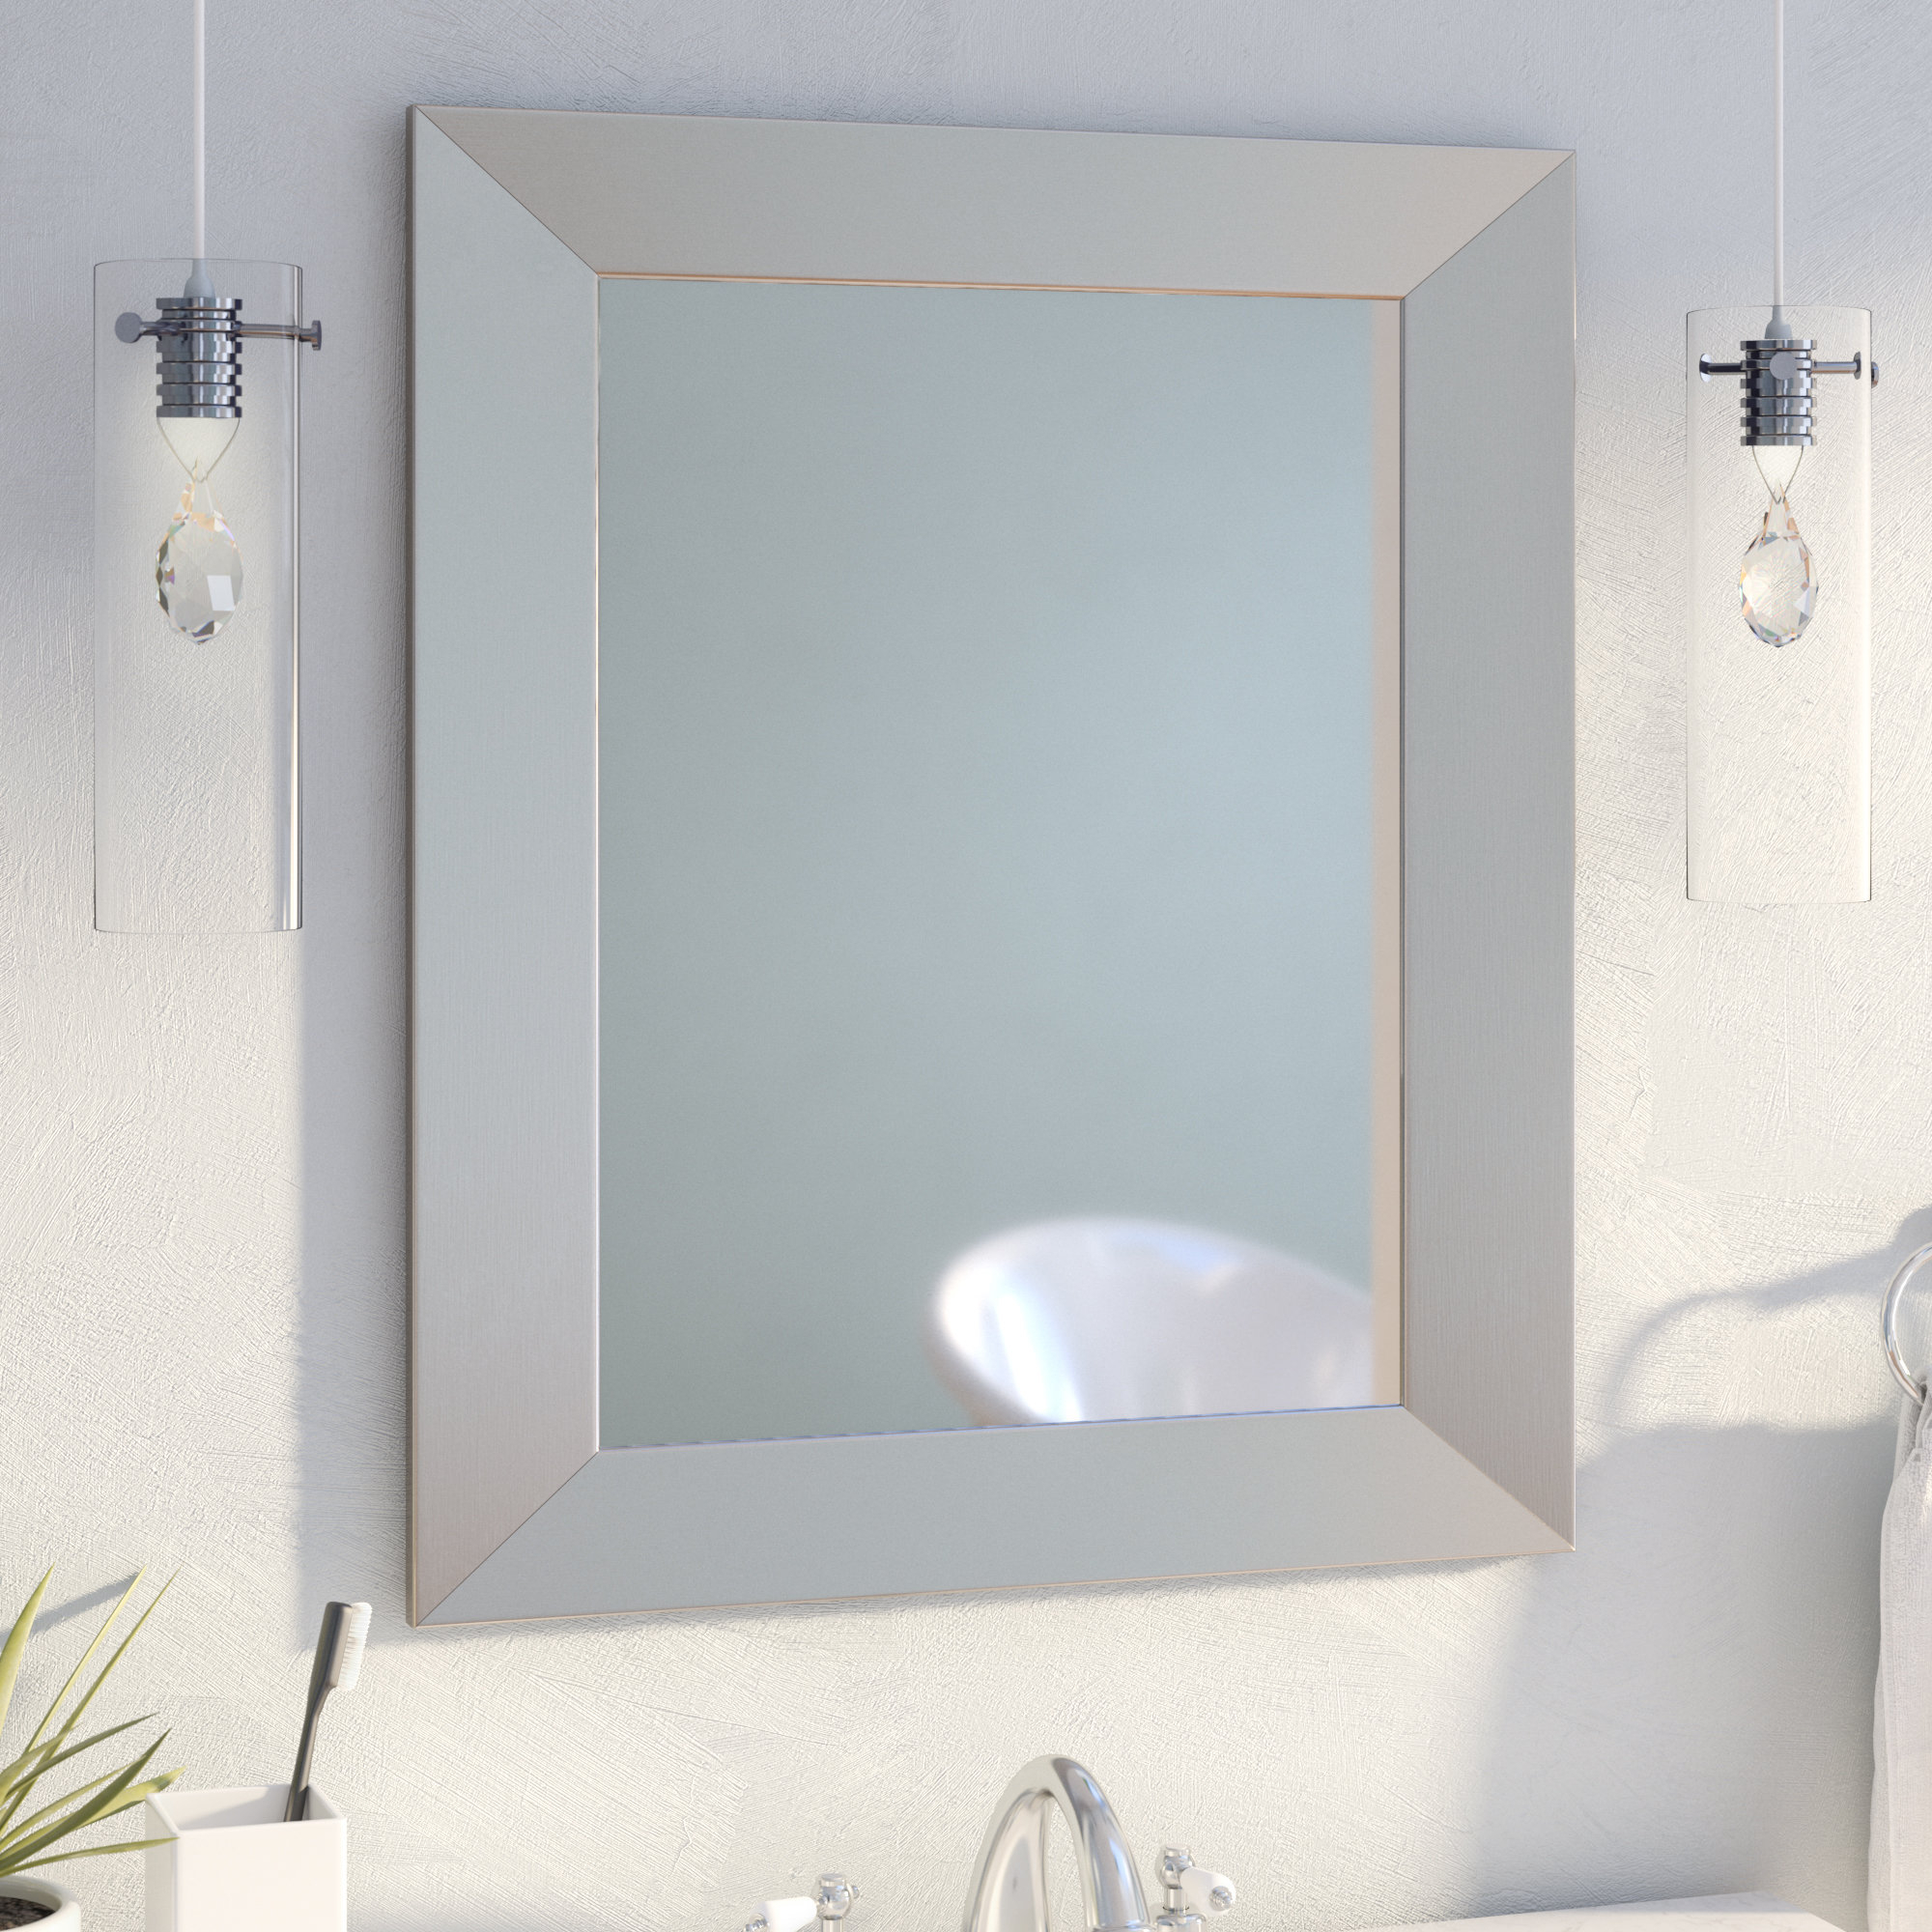 Kurt Modern & Contemporary Wall Mirror Pertaining To Industrial Modern & Contemporary Wall Mirrors (View 16 of 30)